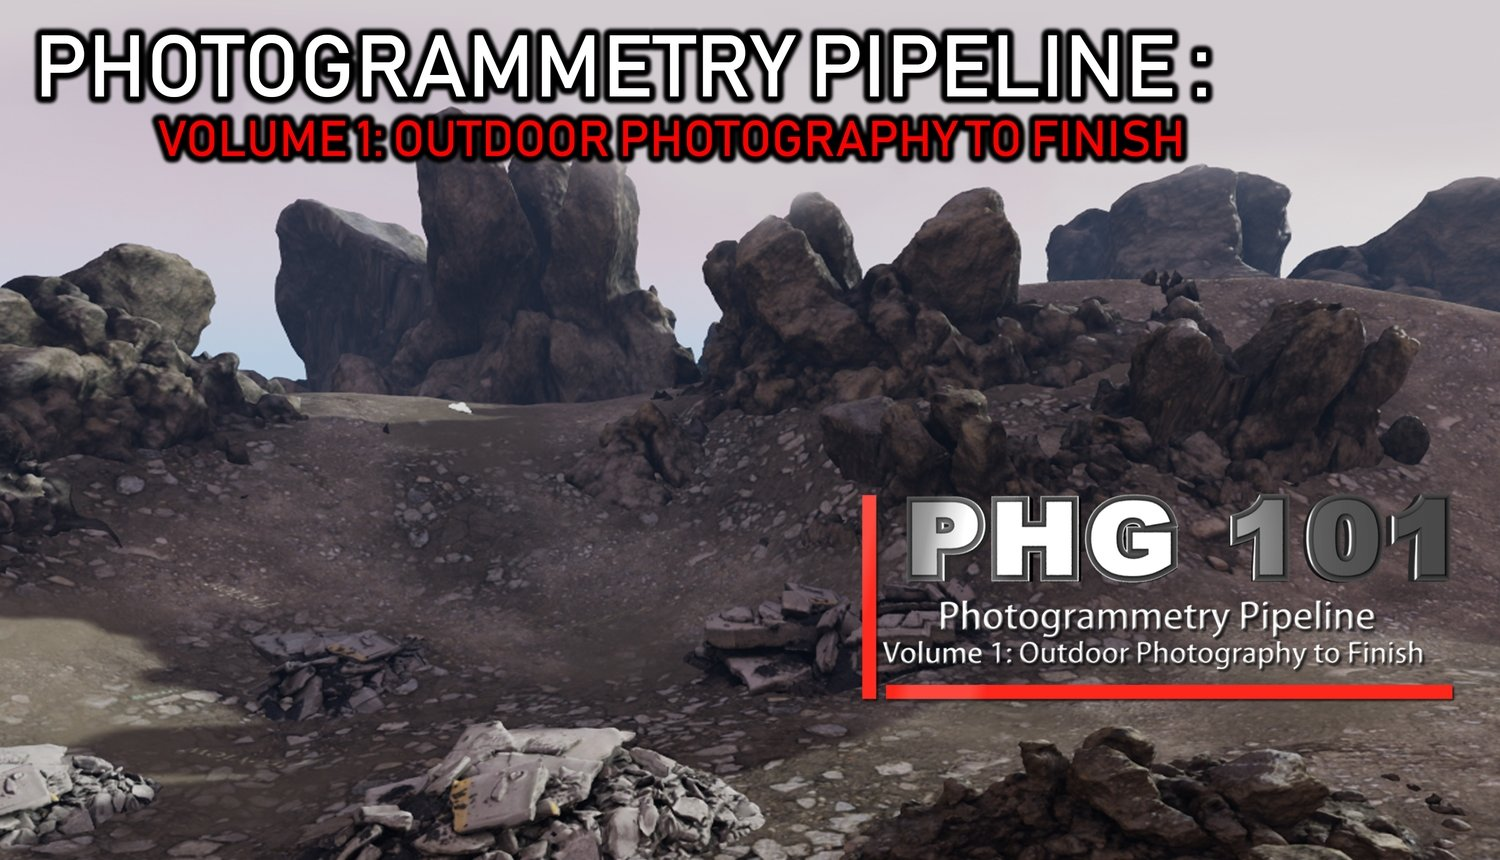 PHG 101- Photogrammetry Pipeline V1